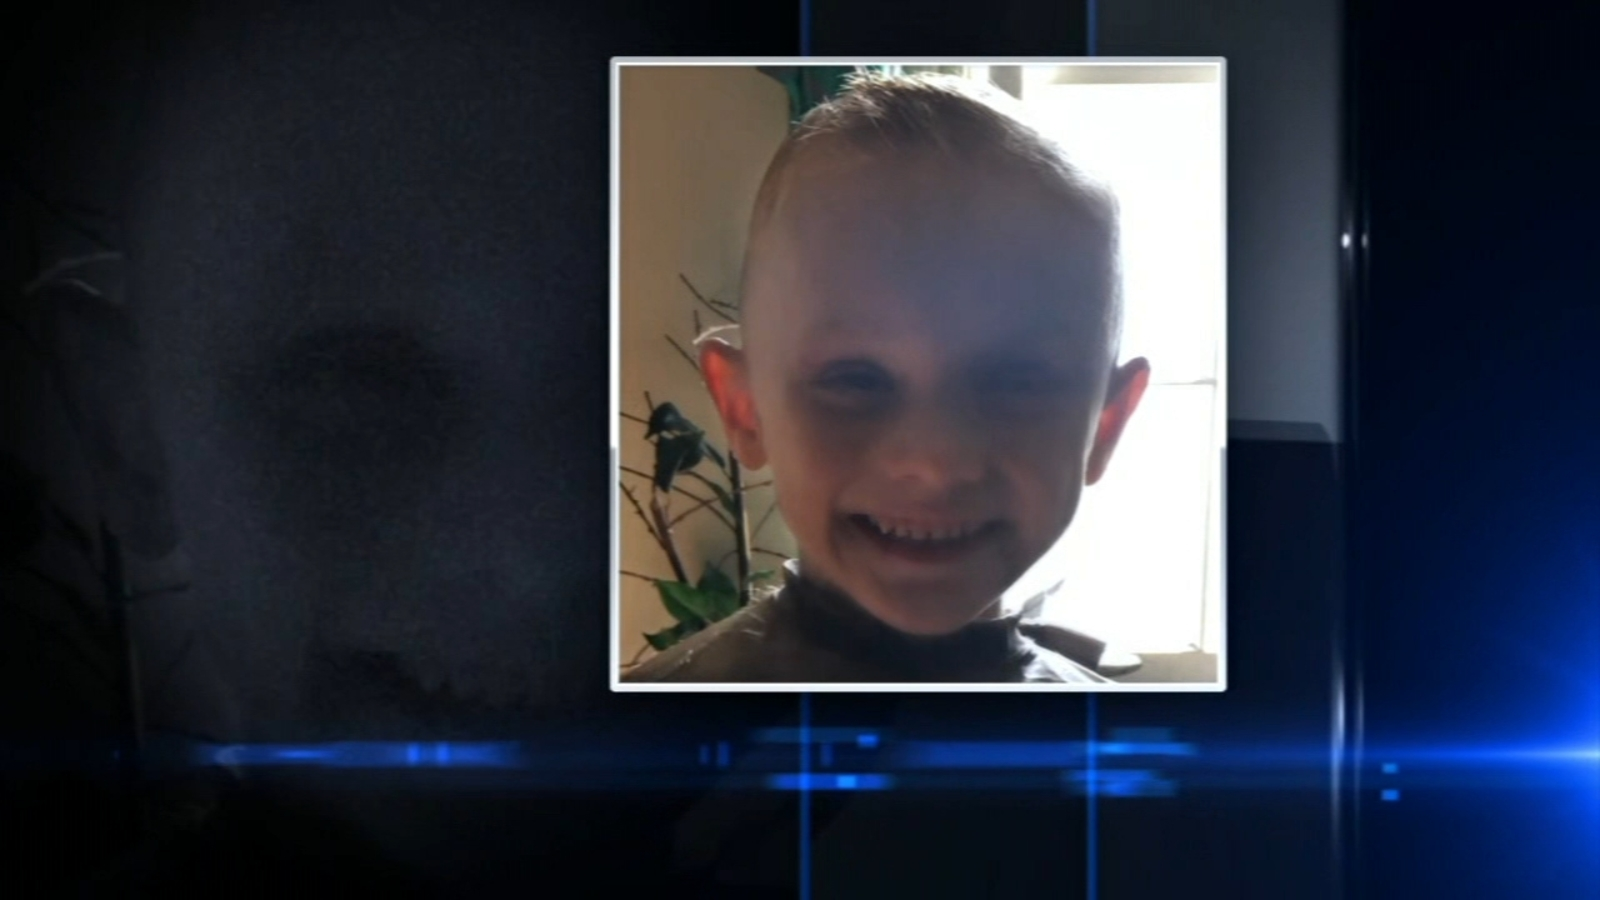 Missing Crystal Lake Boy Andrew Aj Freund Fbi Joins Search For 5 Year Old Abc7 Chicago